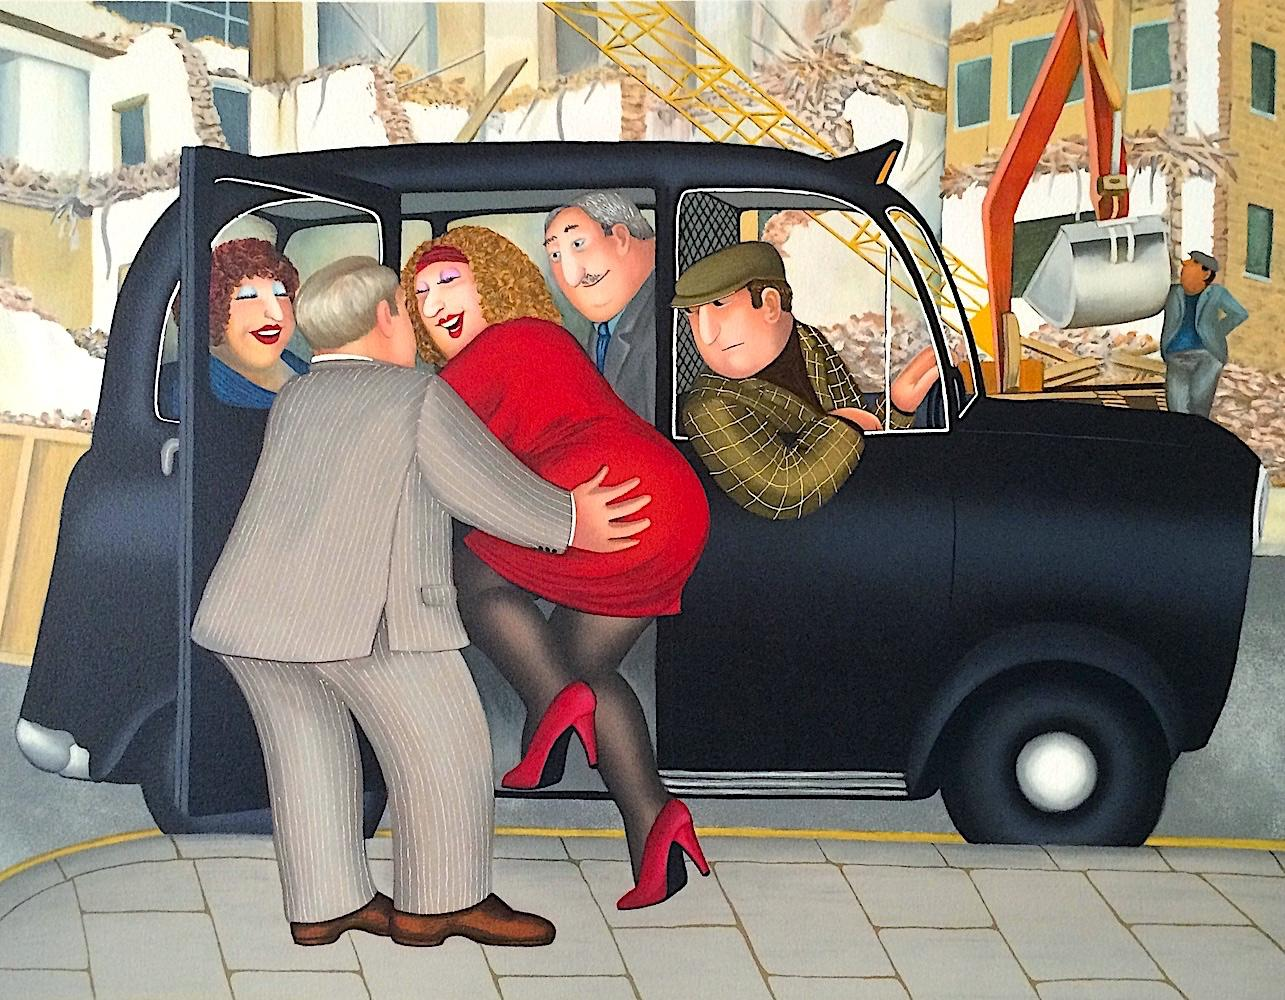 TAXI Signed Lithograph, Lady in Red, London Black Cab, British Humor